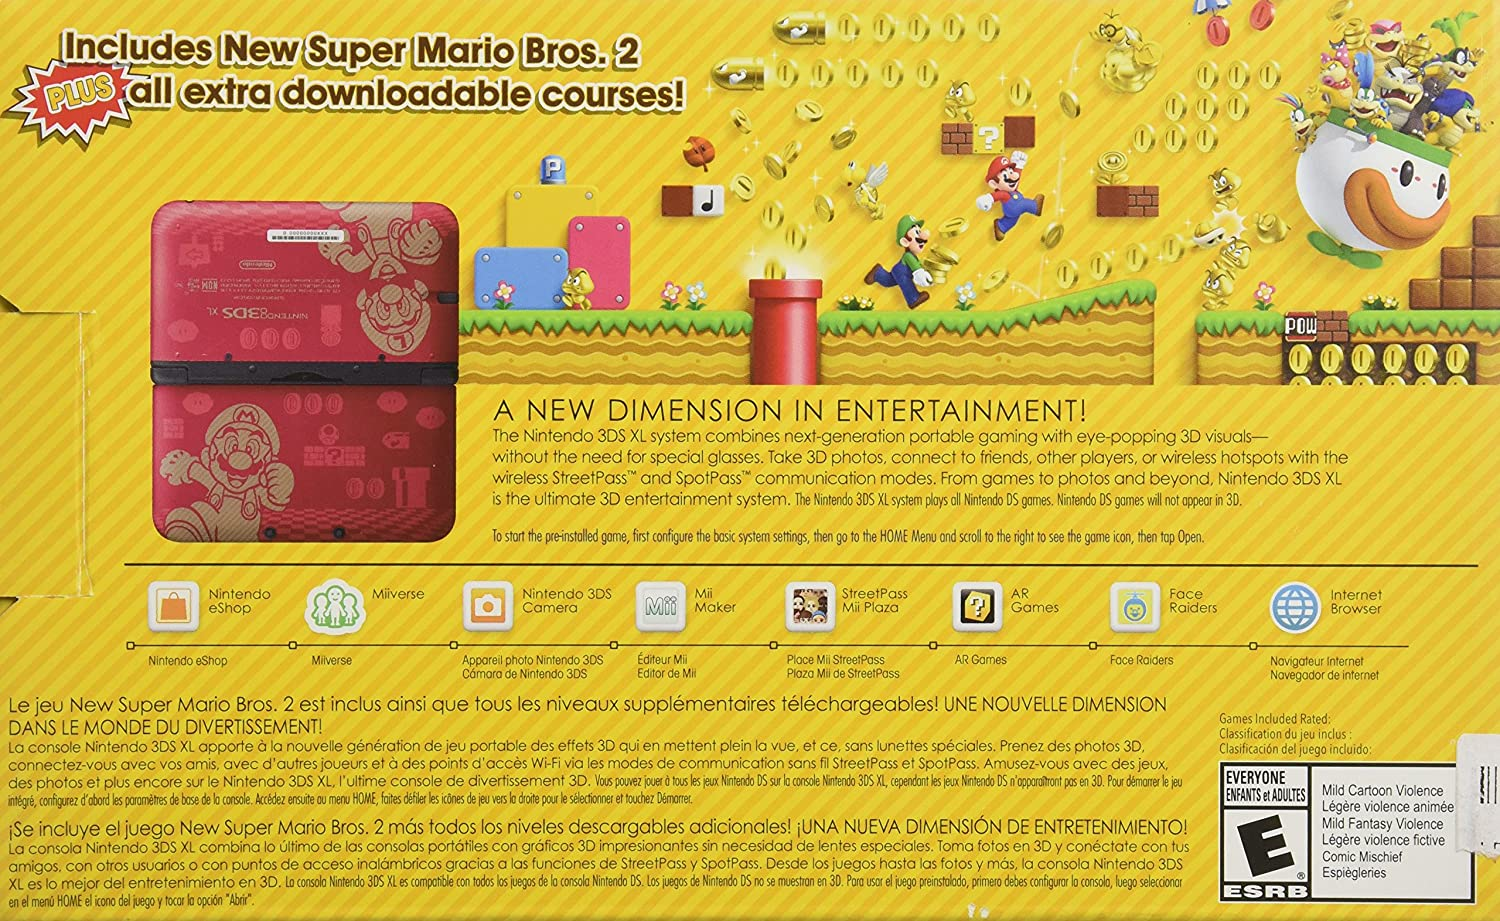 download new super mario bros 2 for 3ds